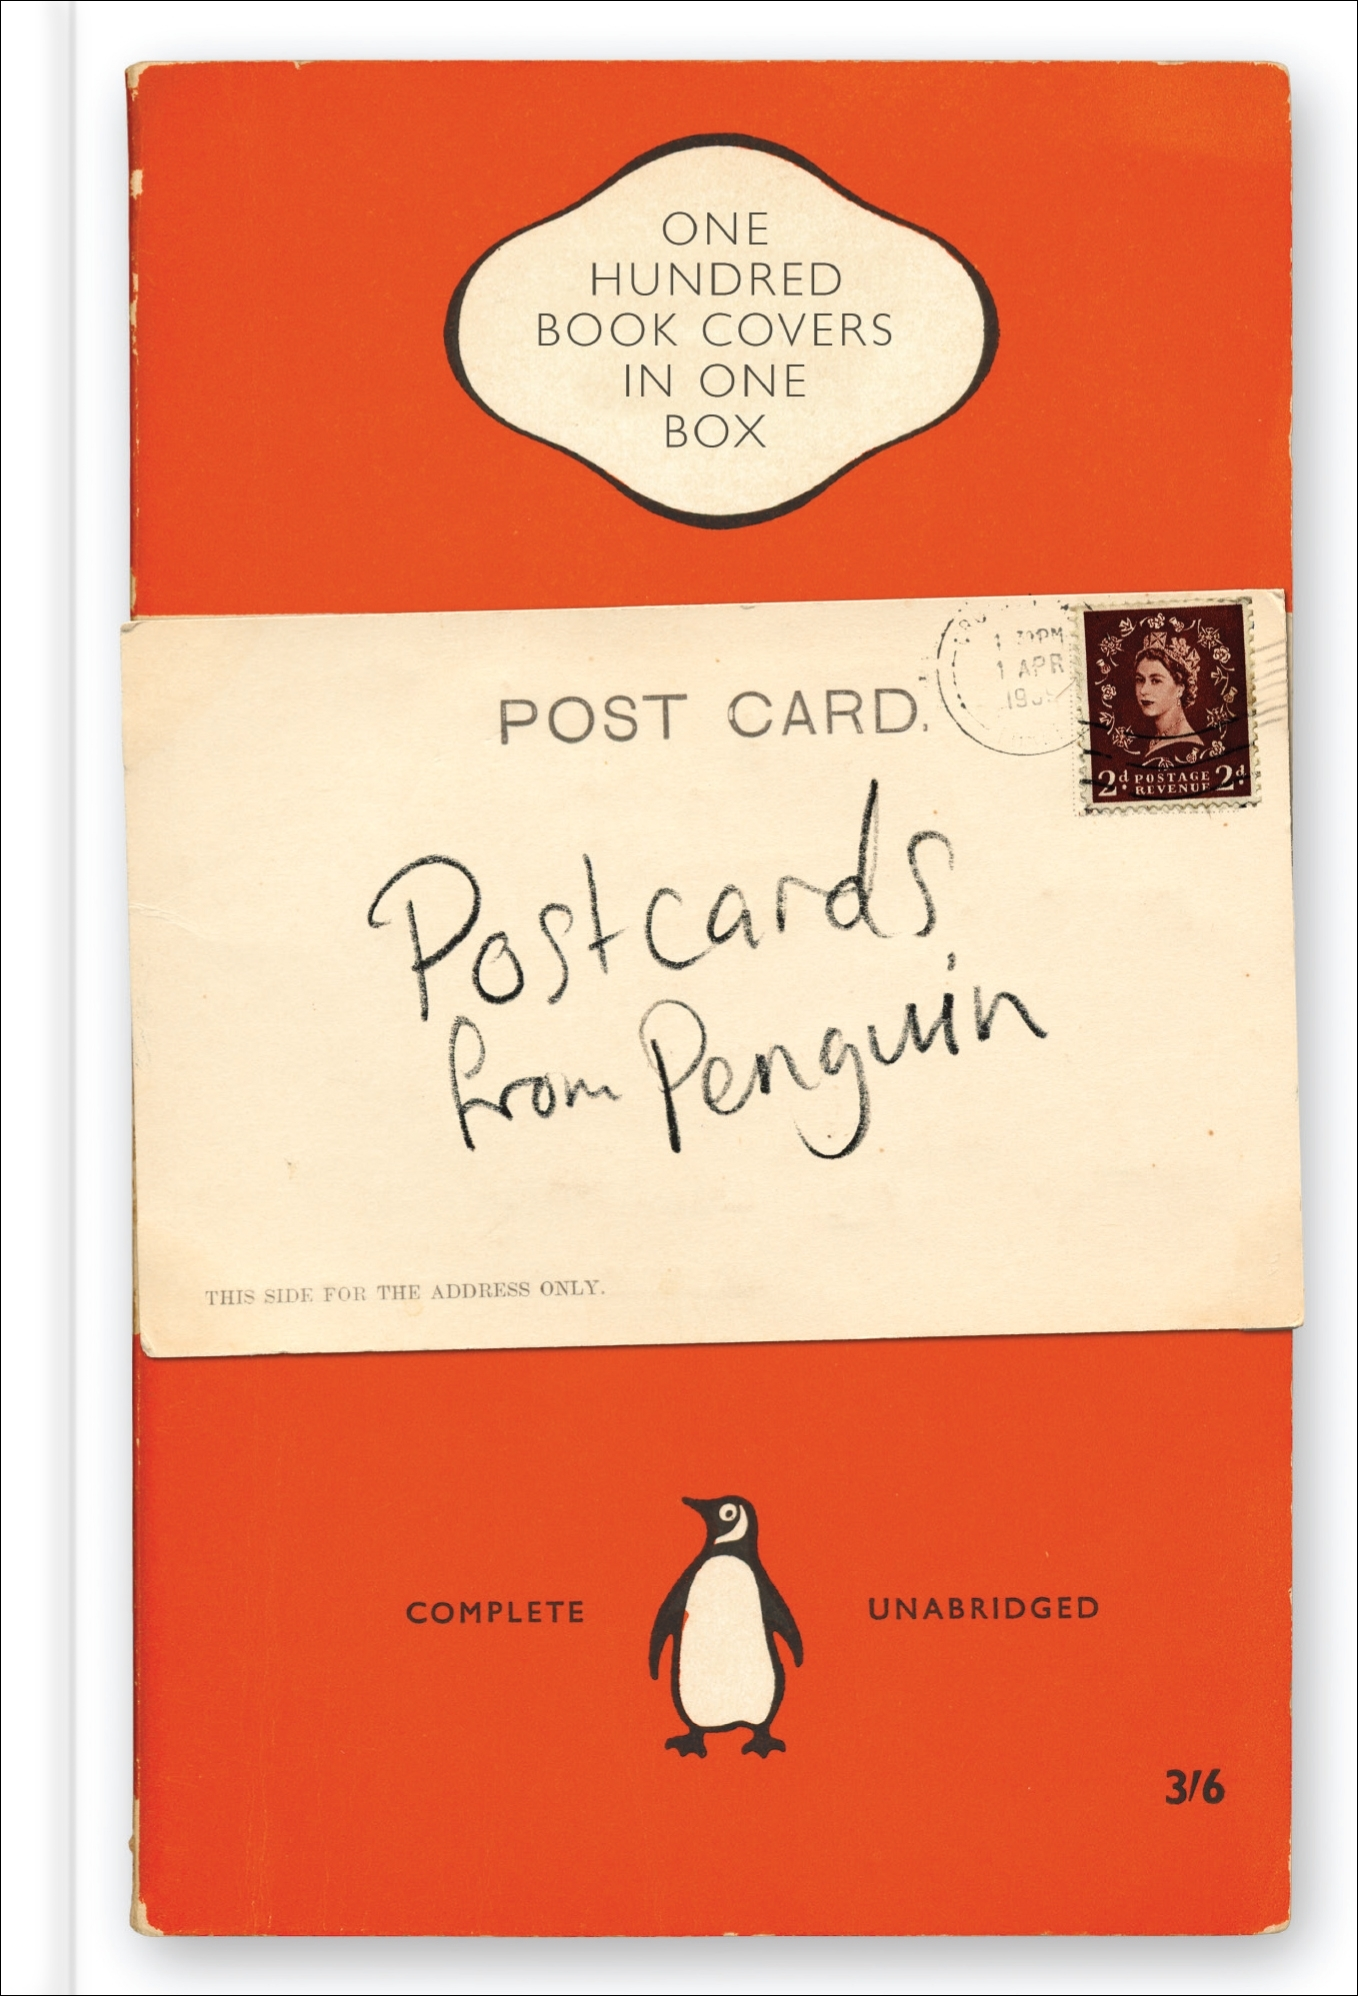 Classic Book Cover Postcards ~ Postcards from penguin book jackets in one